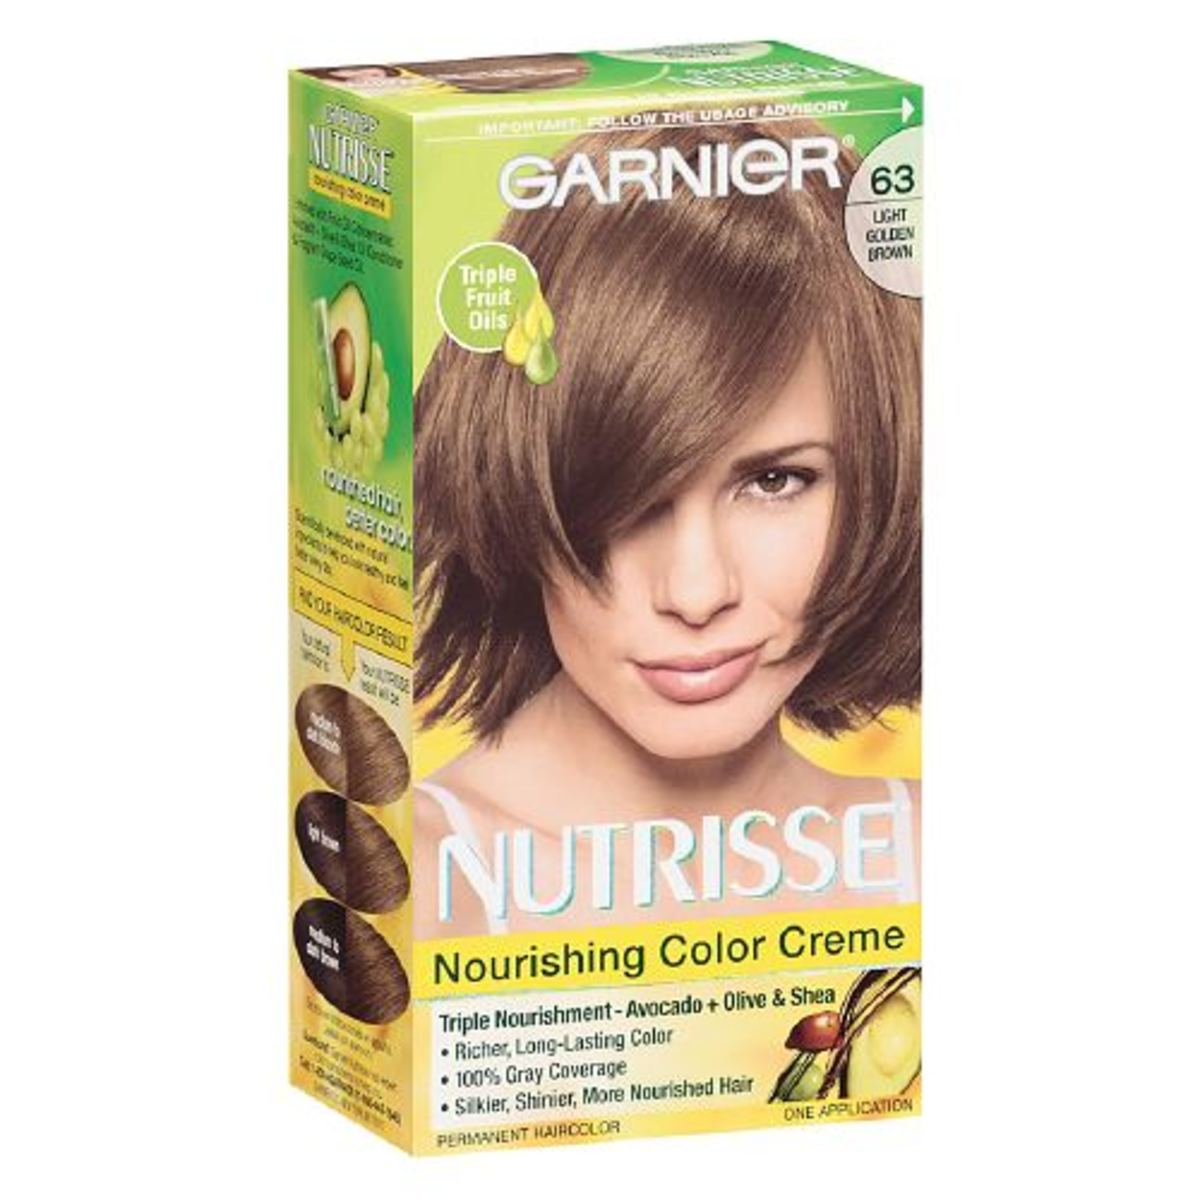 Garnier Nutrisse Permanent Hair Colour in 63 Light Golden Brown